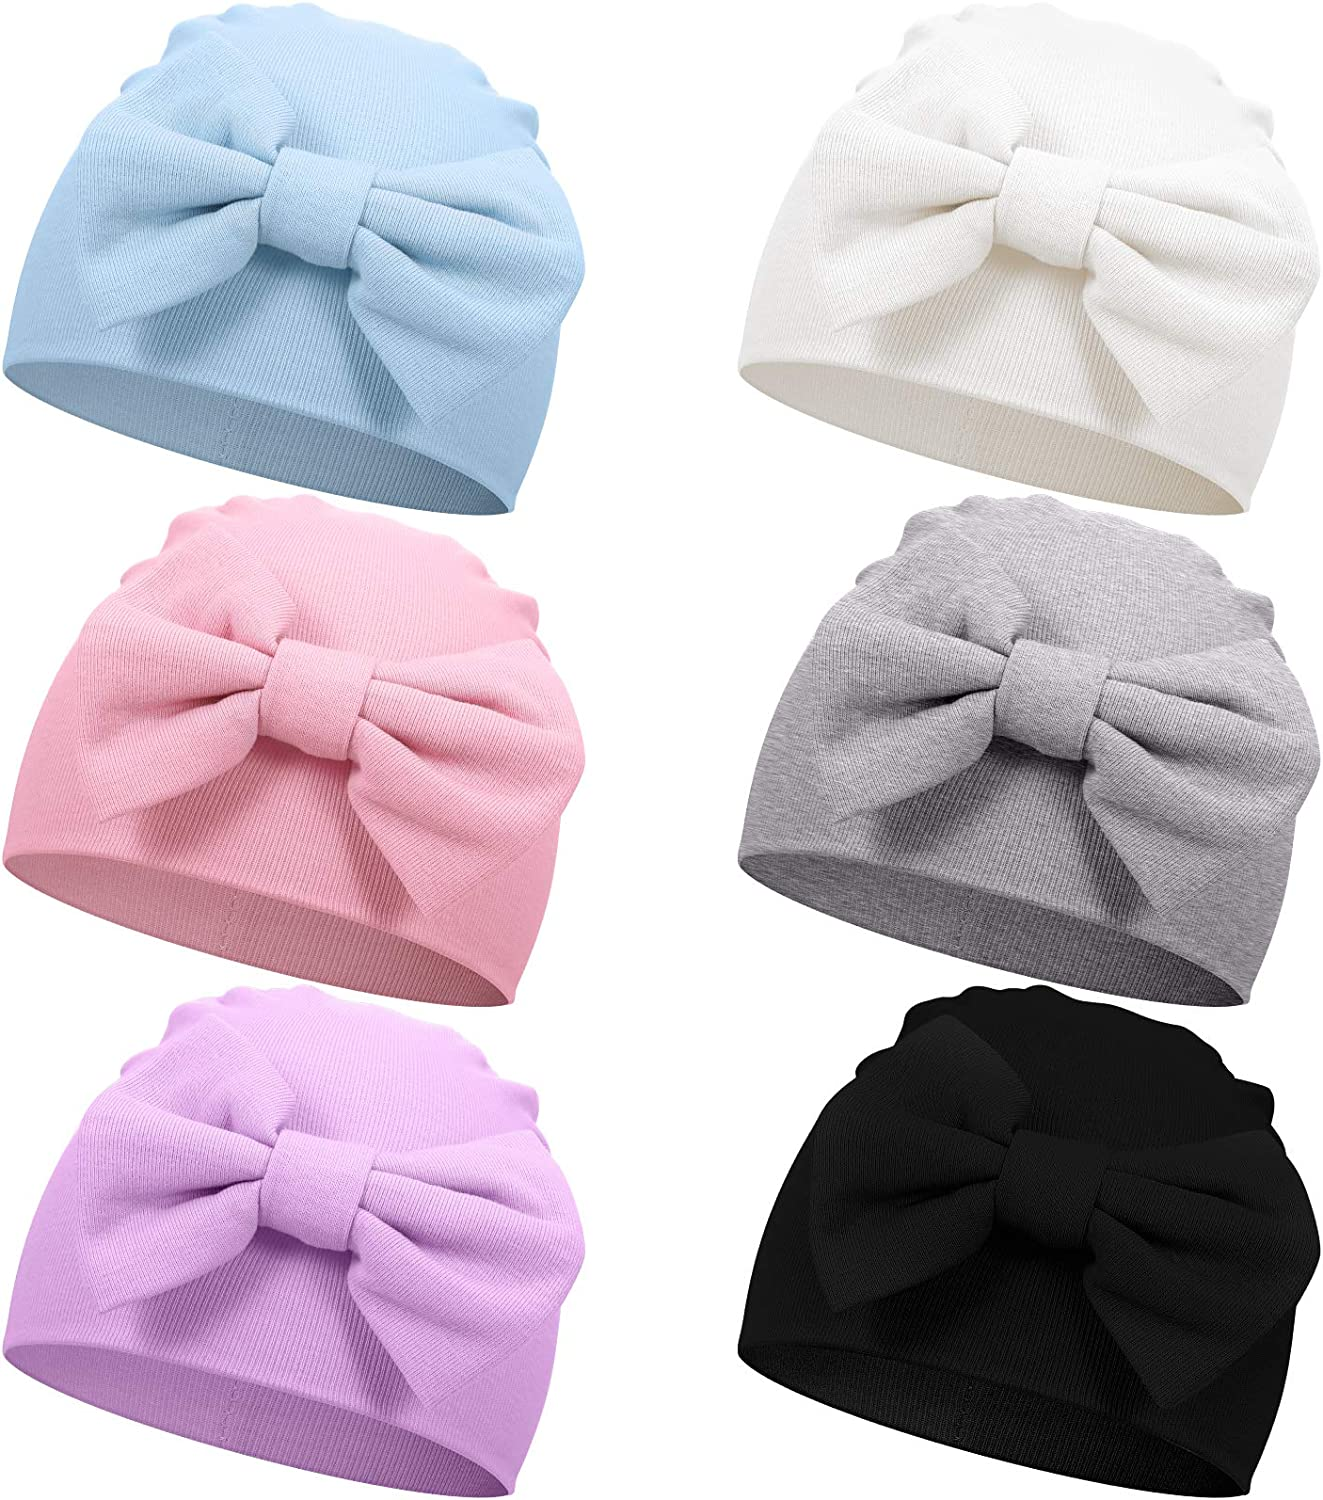 Geyoga 6 Pieces Newborn Baby Unisex Soft Beanie Hat with Cute Bow for 0-6 Months Baby